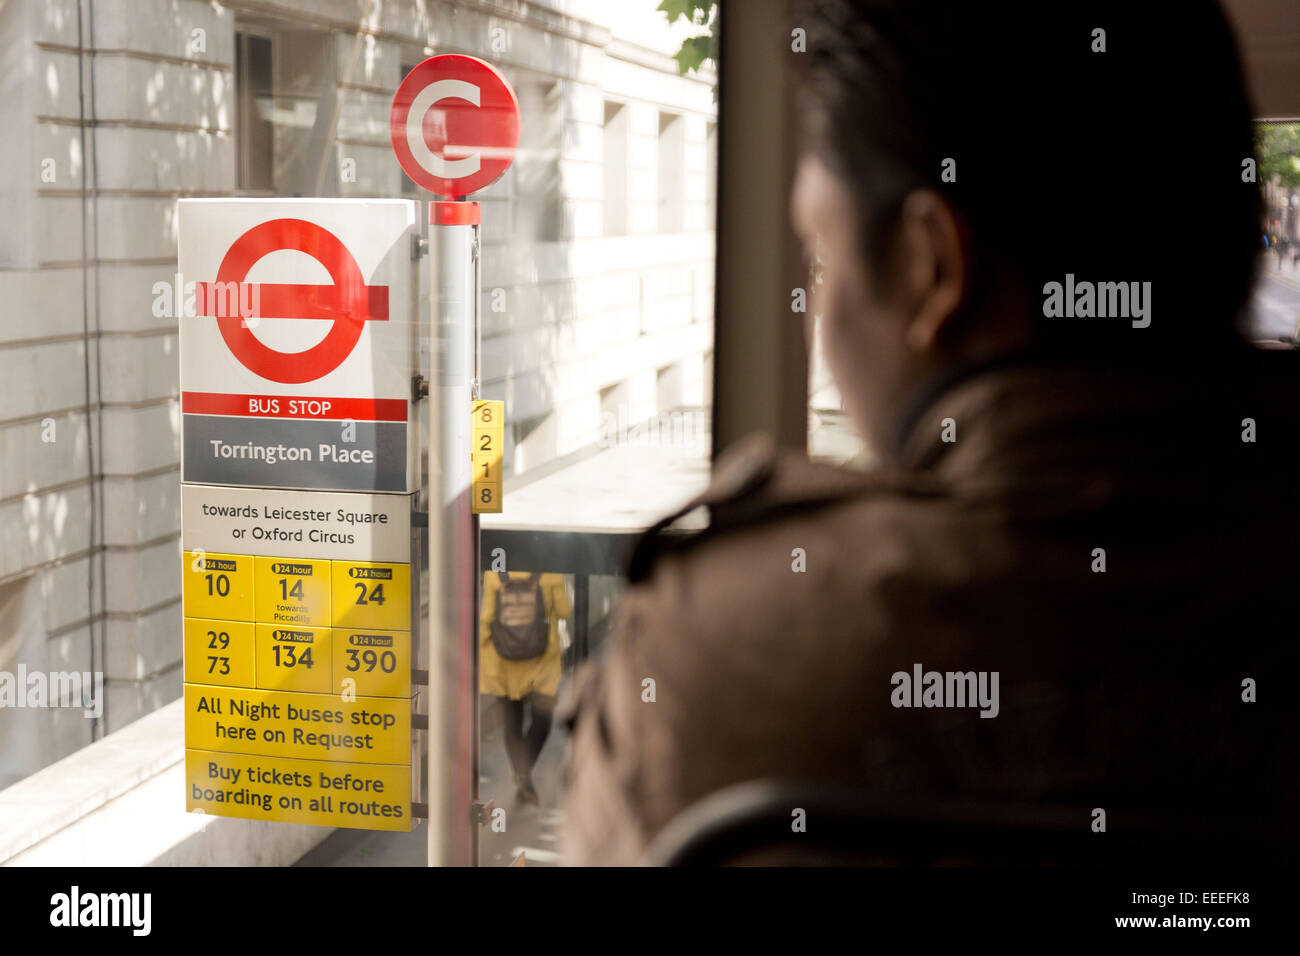 Passengers can easily read bus stop flags from the upper deck - Stock Image